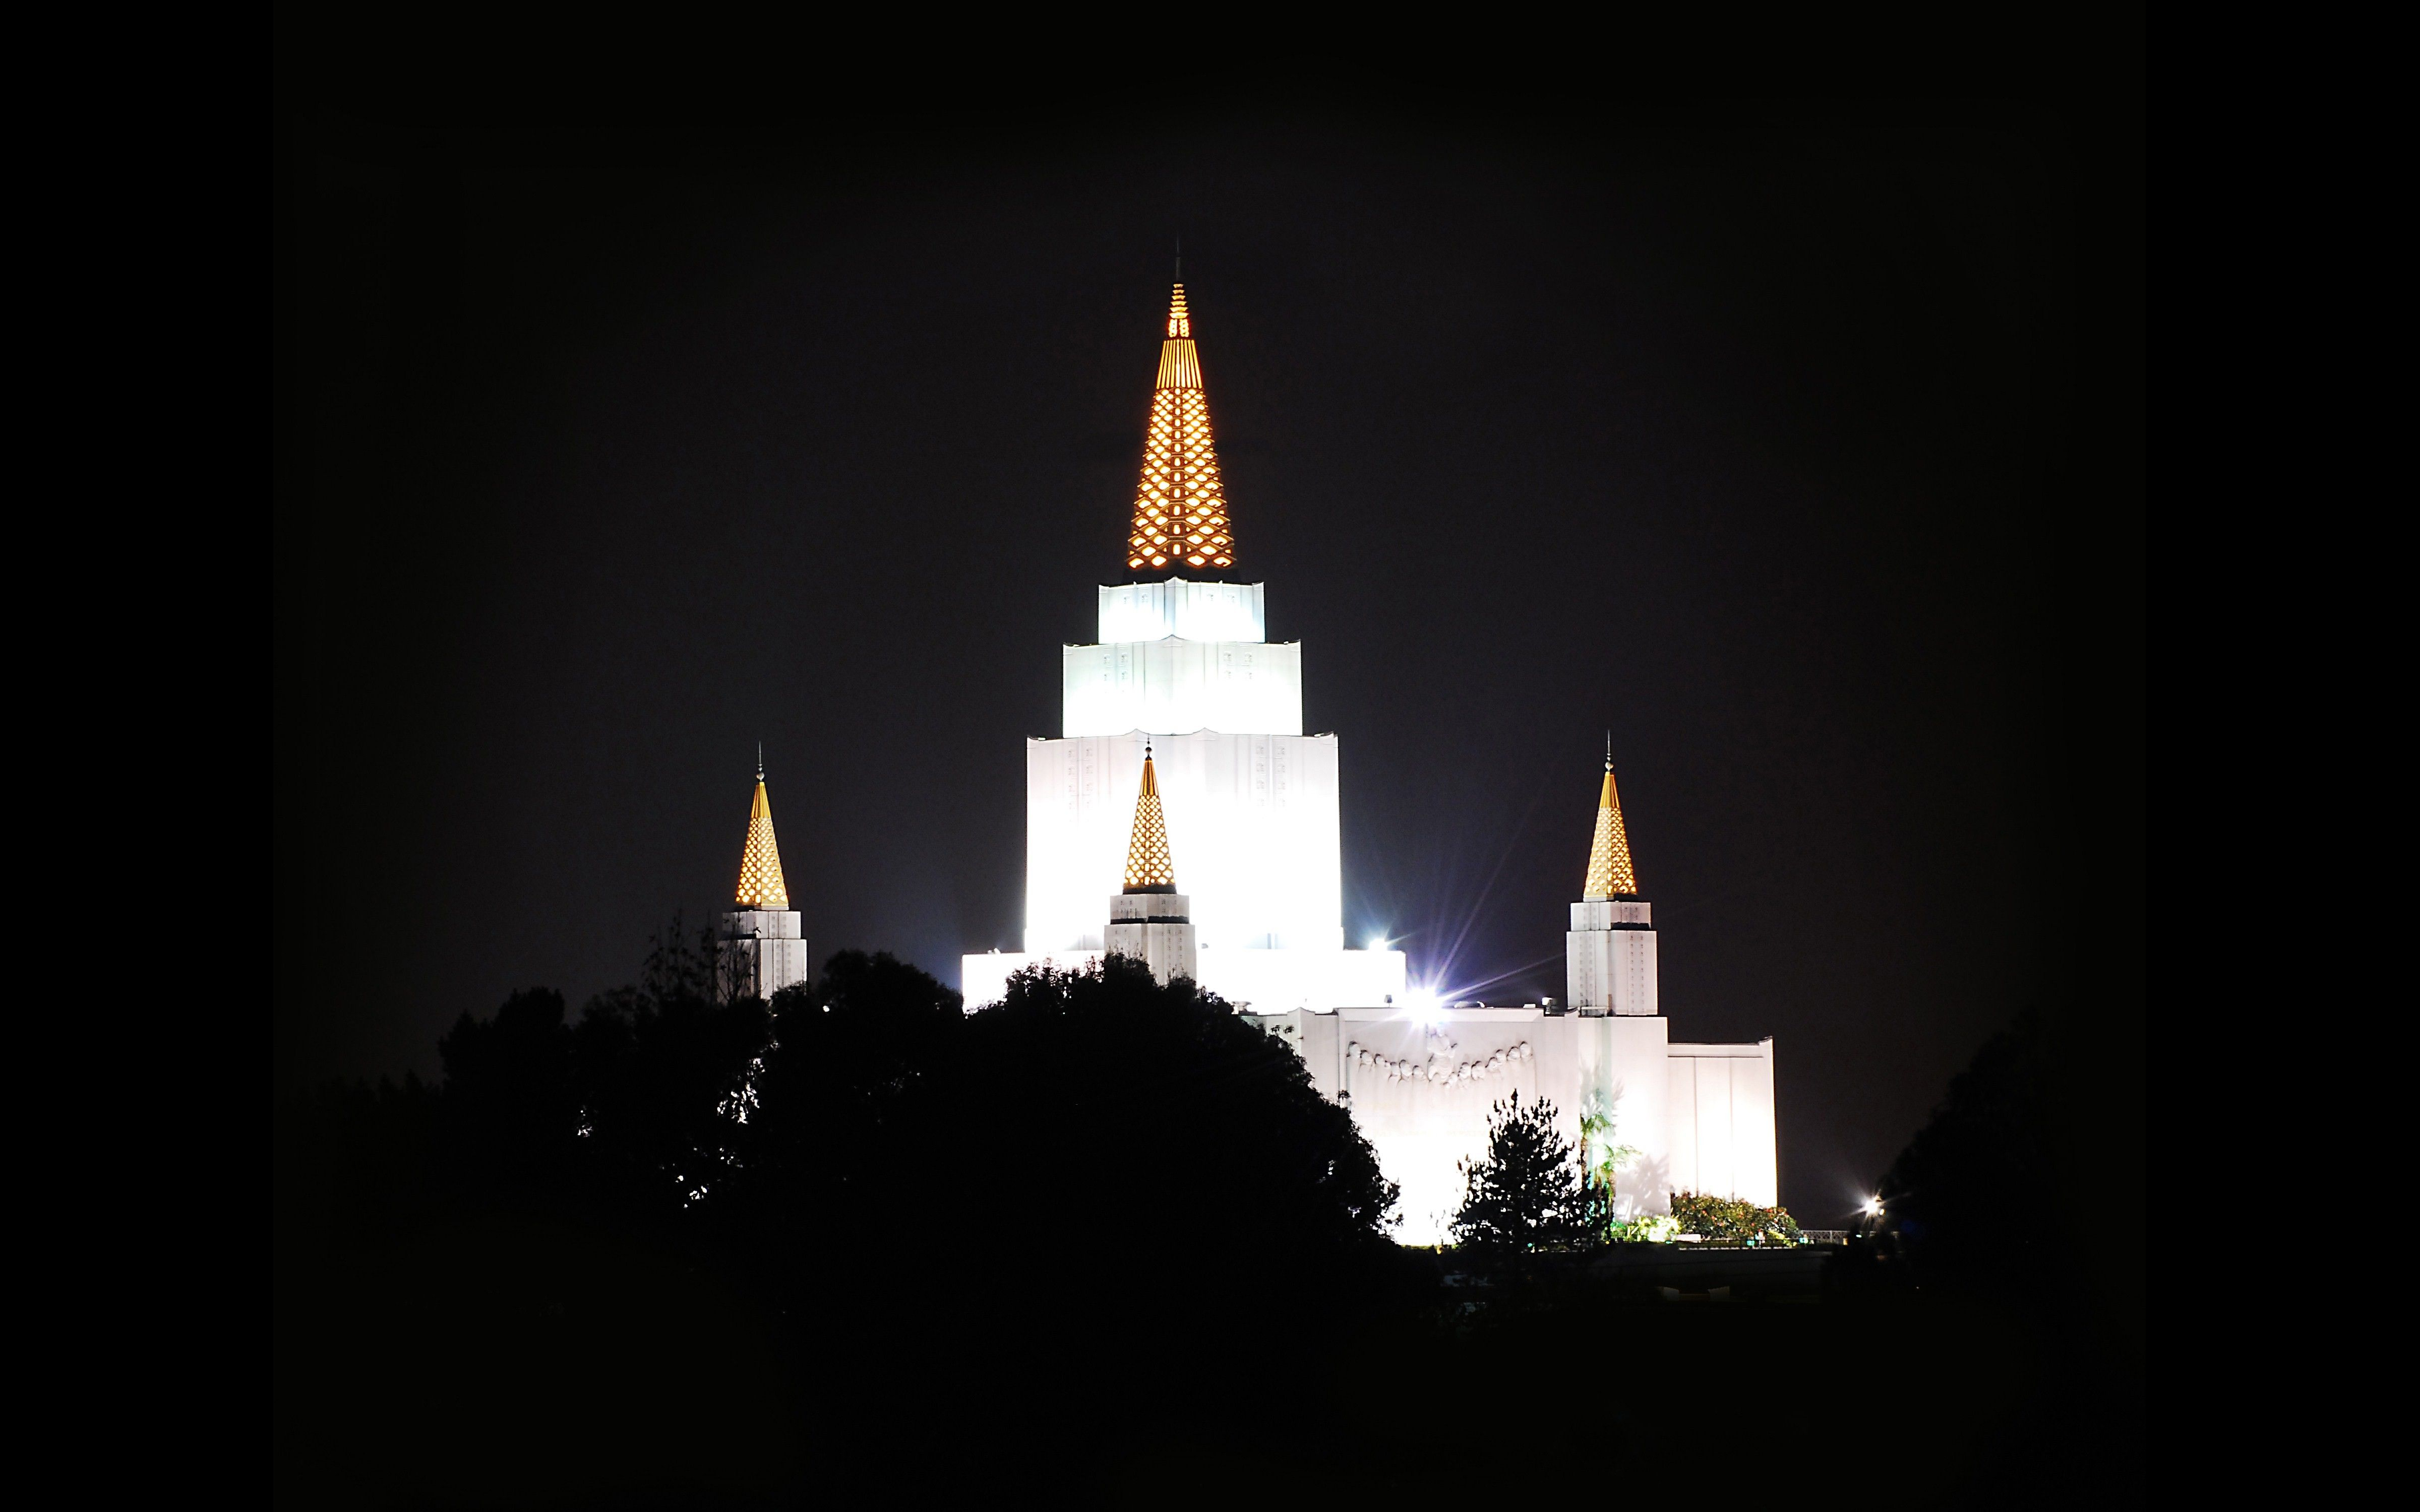 The Oakland California Temple in the evening, including scenery.